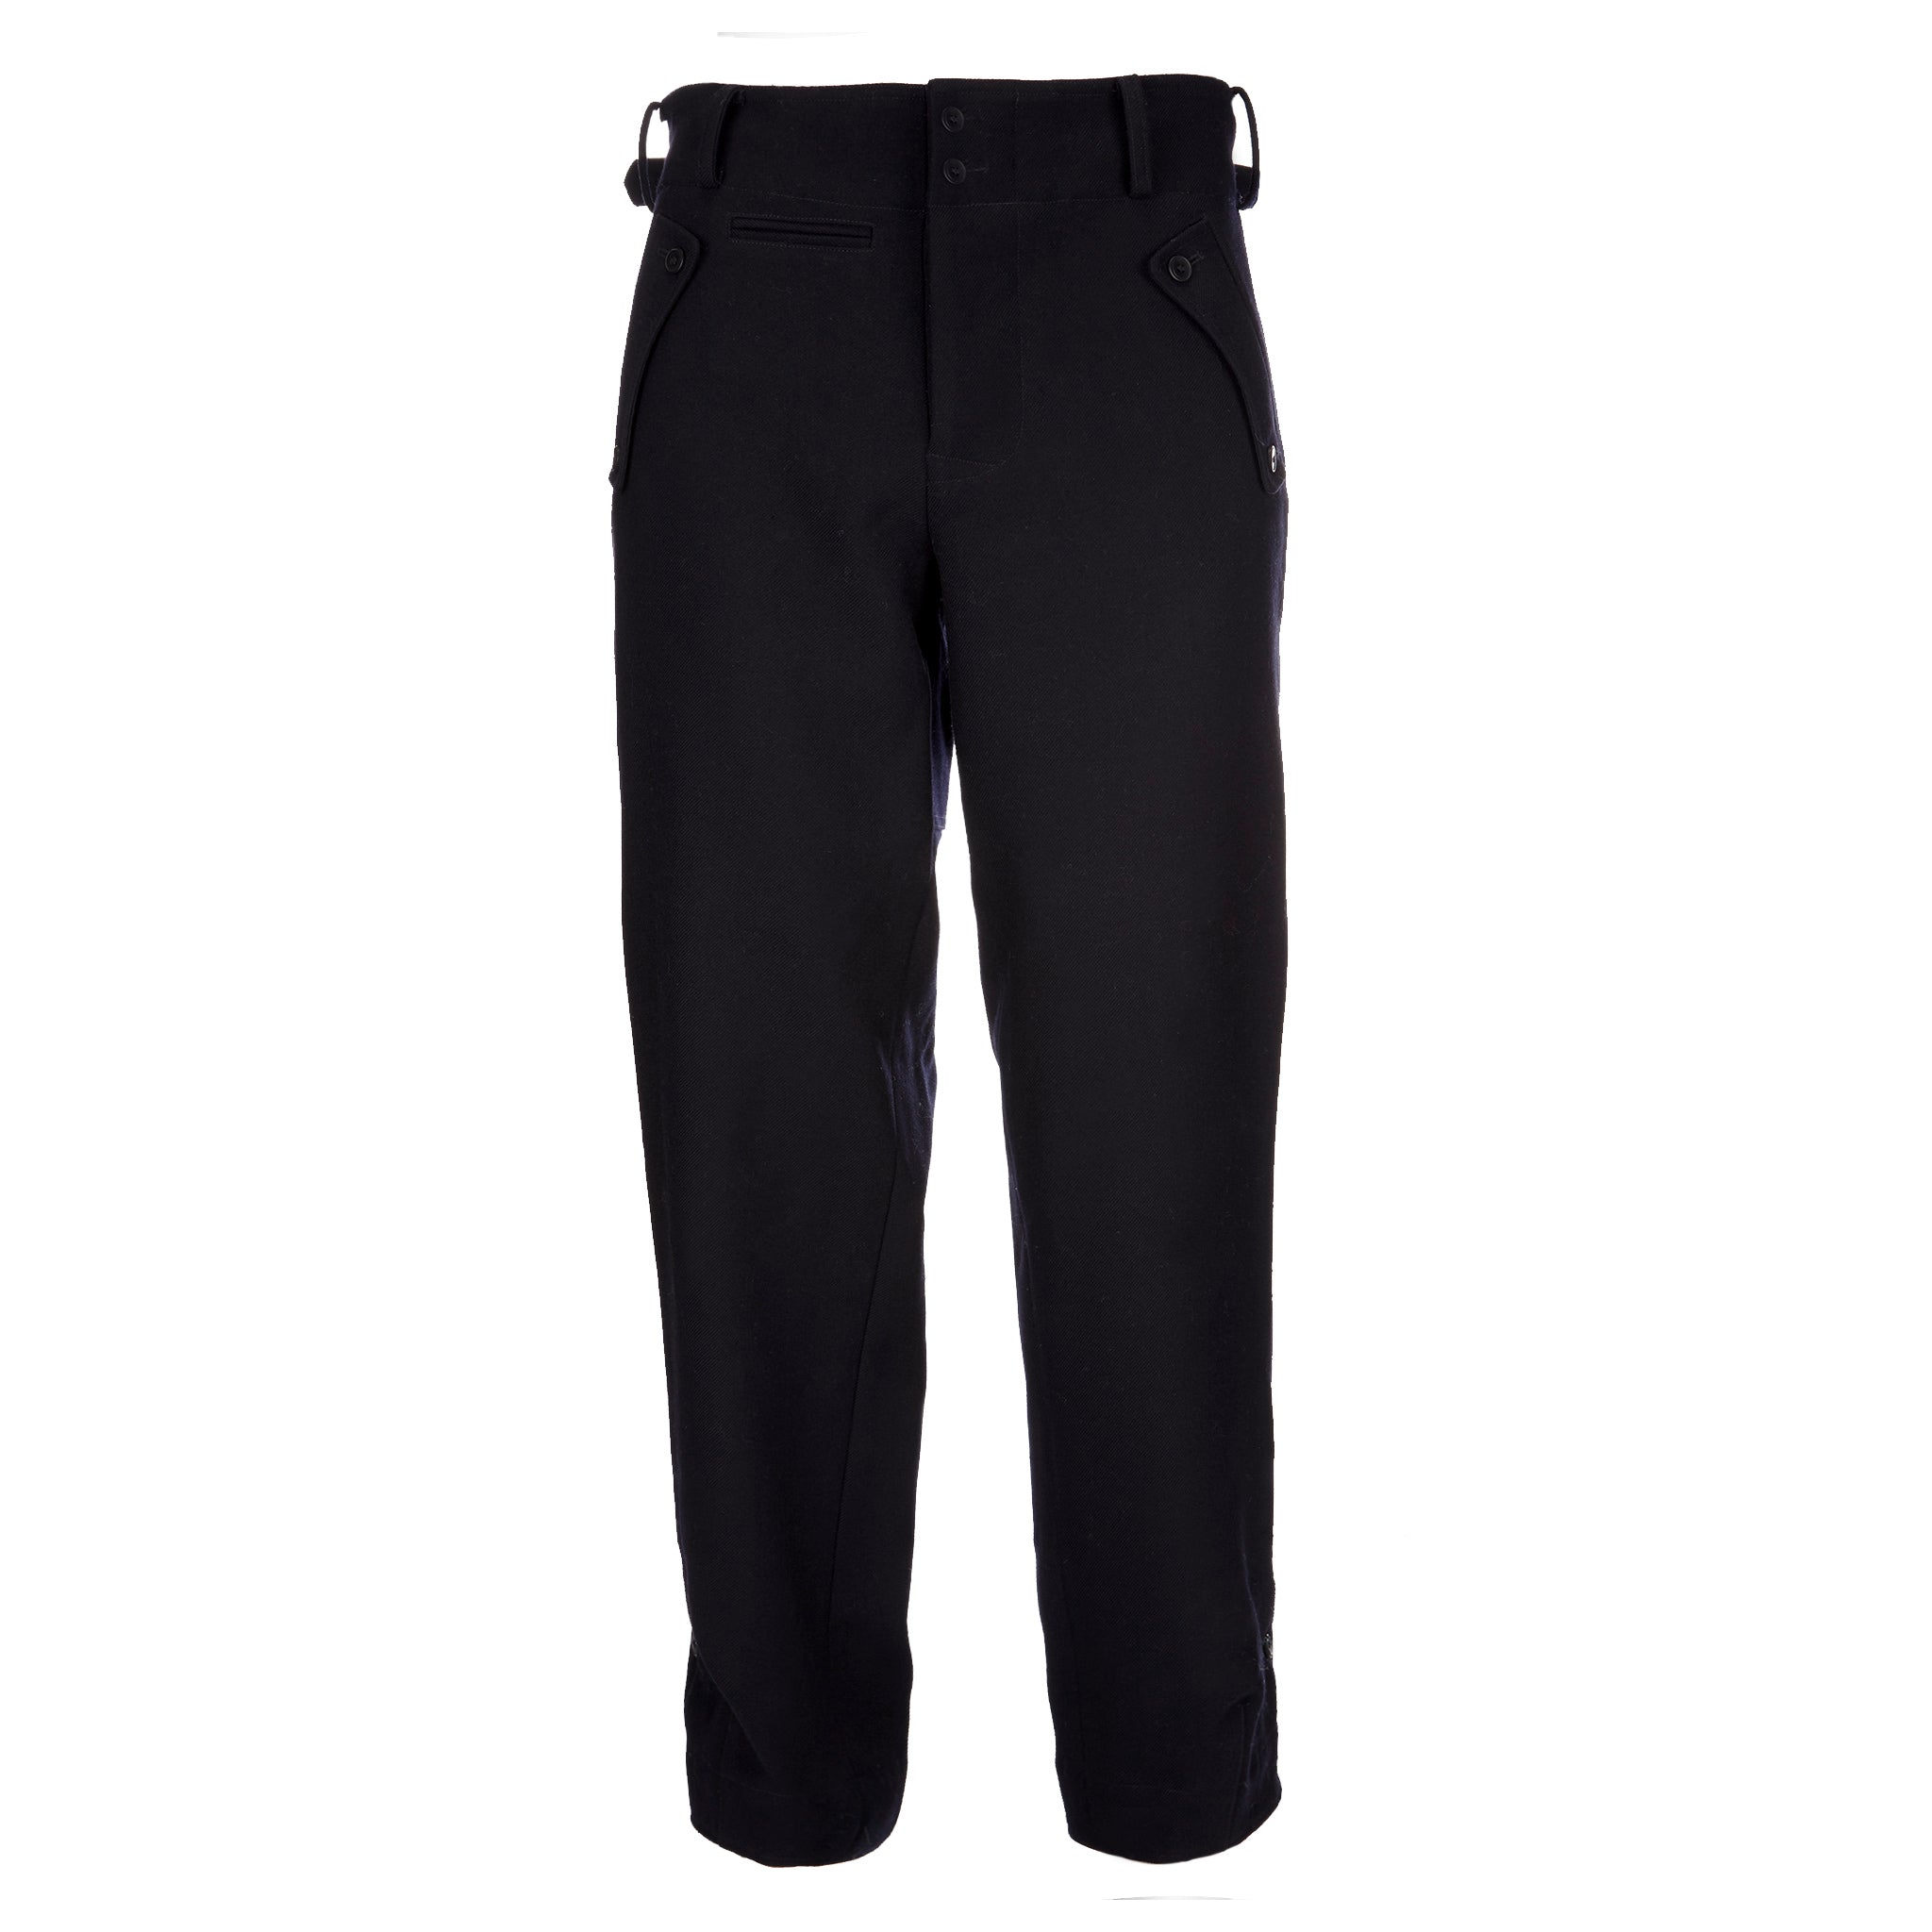 Archie Foal Men's Gunner Wool Combat Trouser in Ink